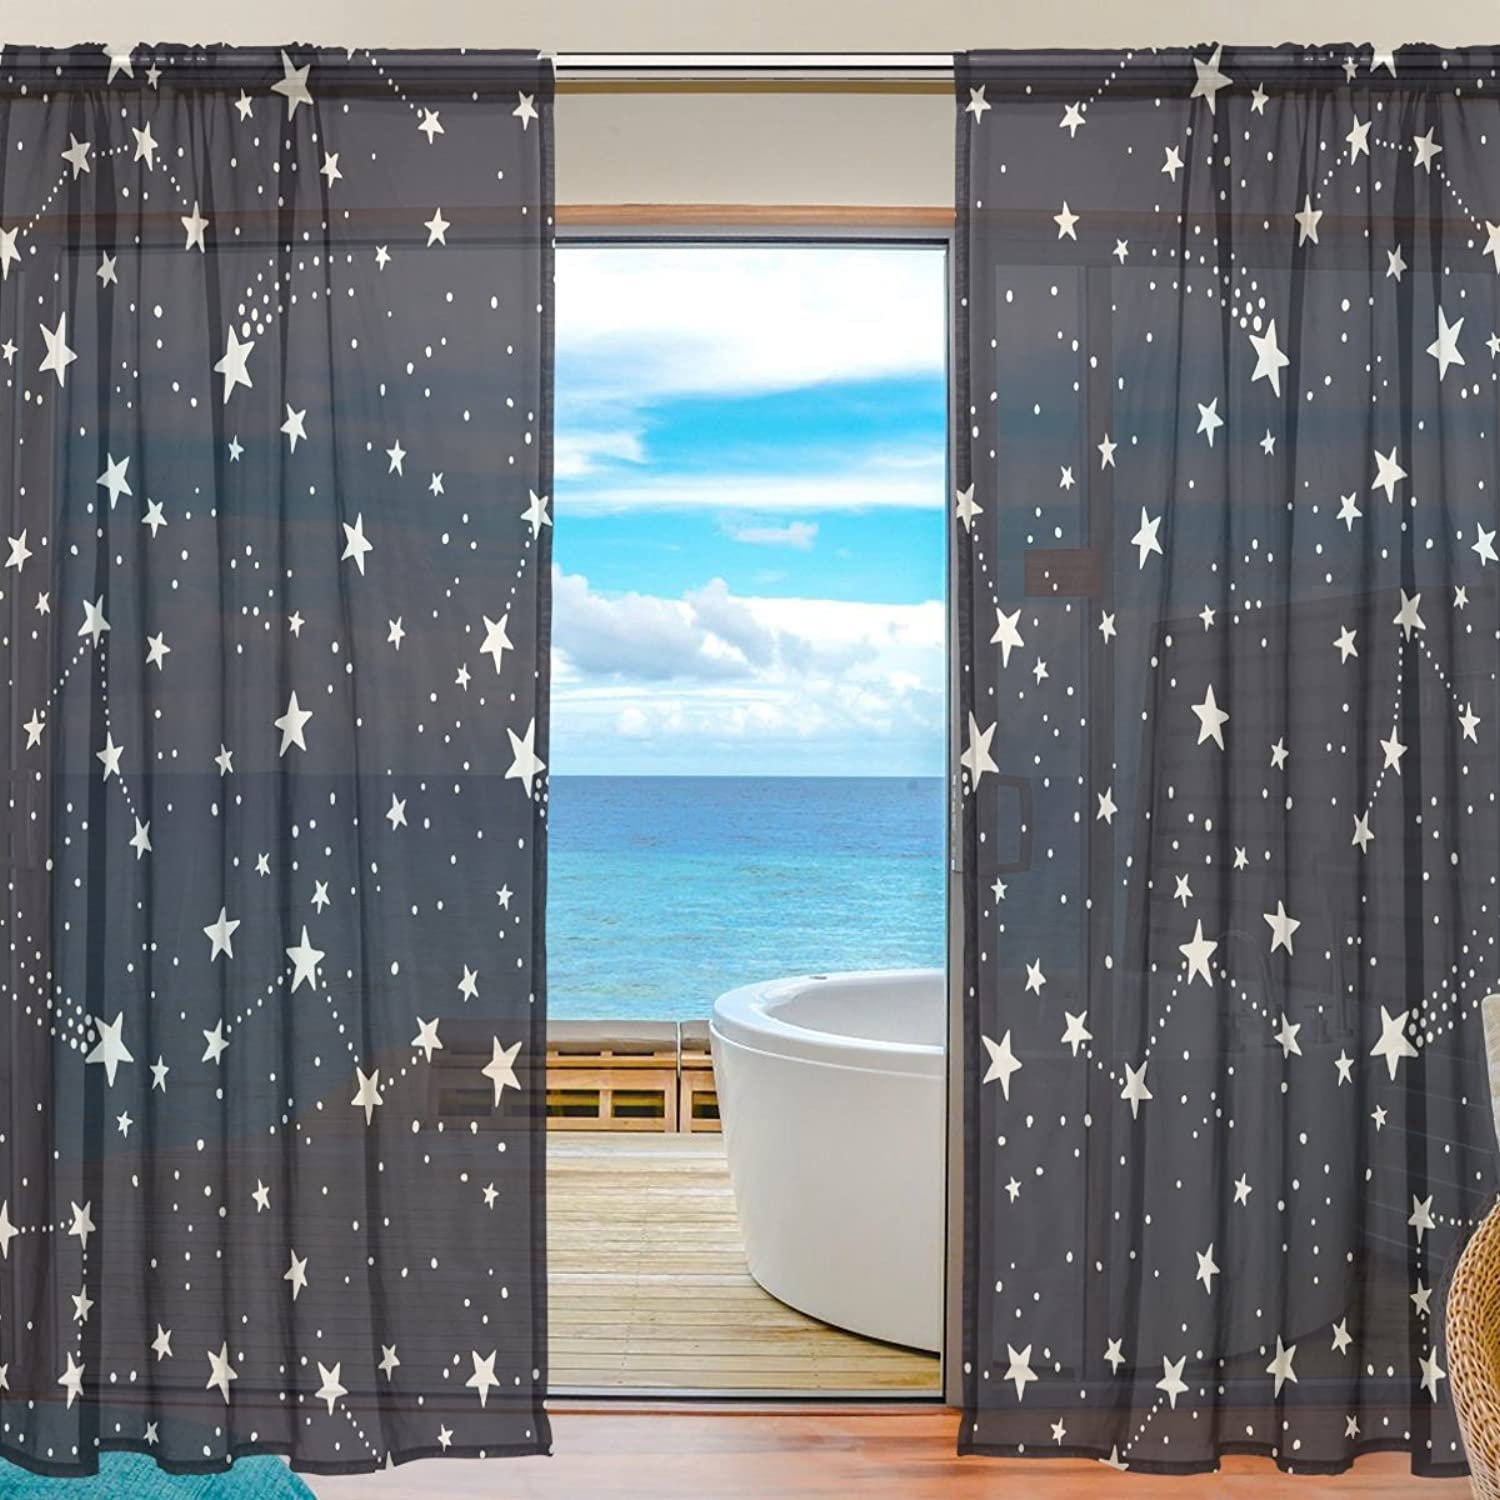 Vantaso Sheer Curtains 78 inch Long Constellations Stars for Kids Girls Bedroom Living Room Window Decorative 2 Panels